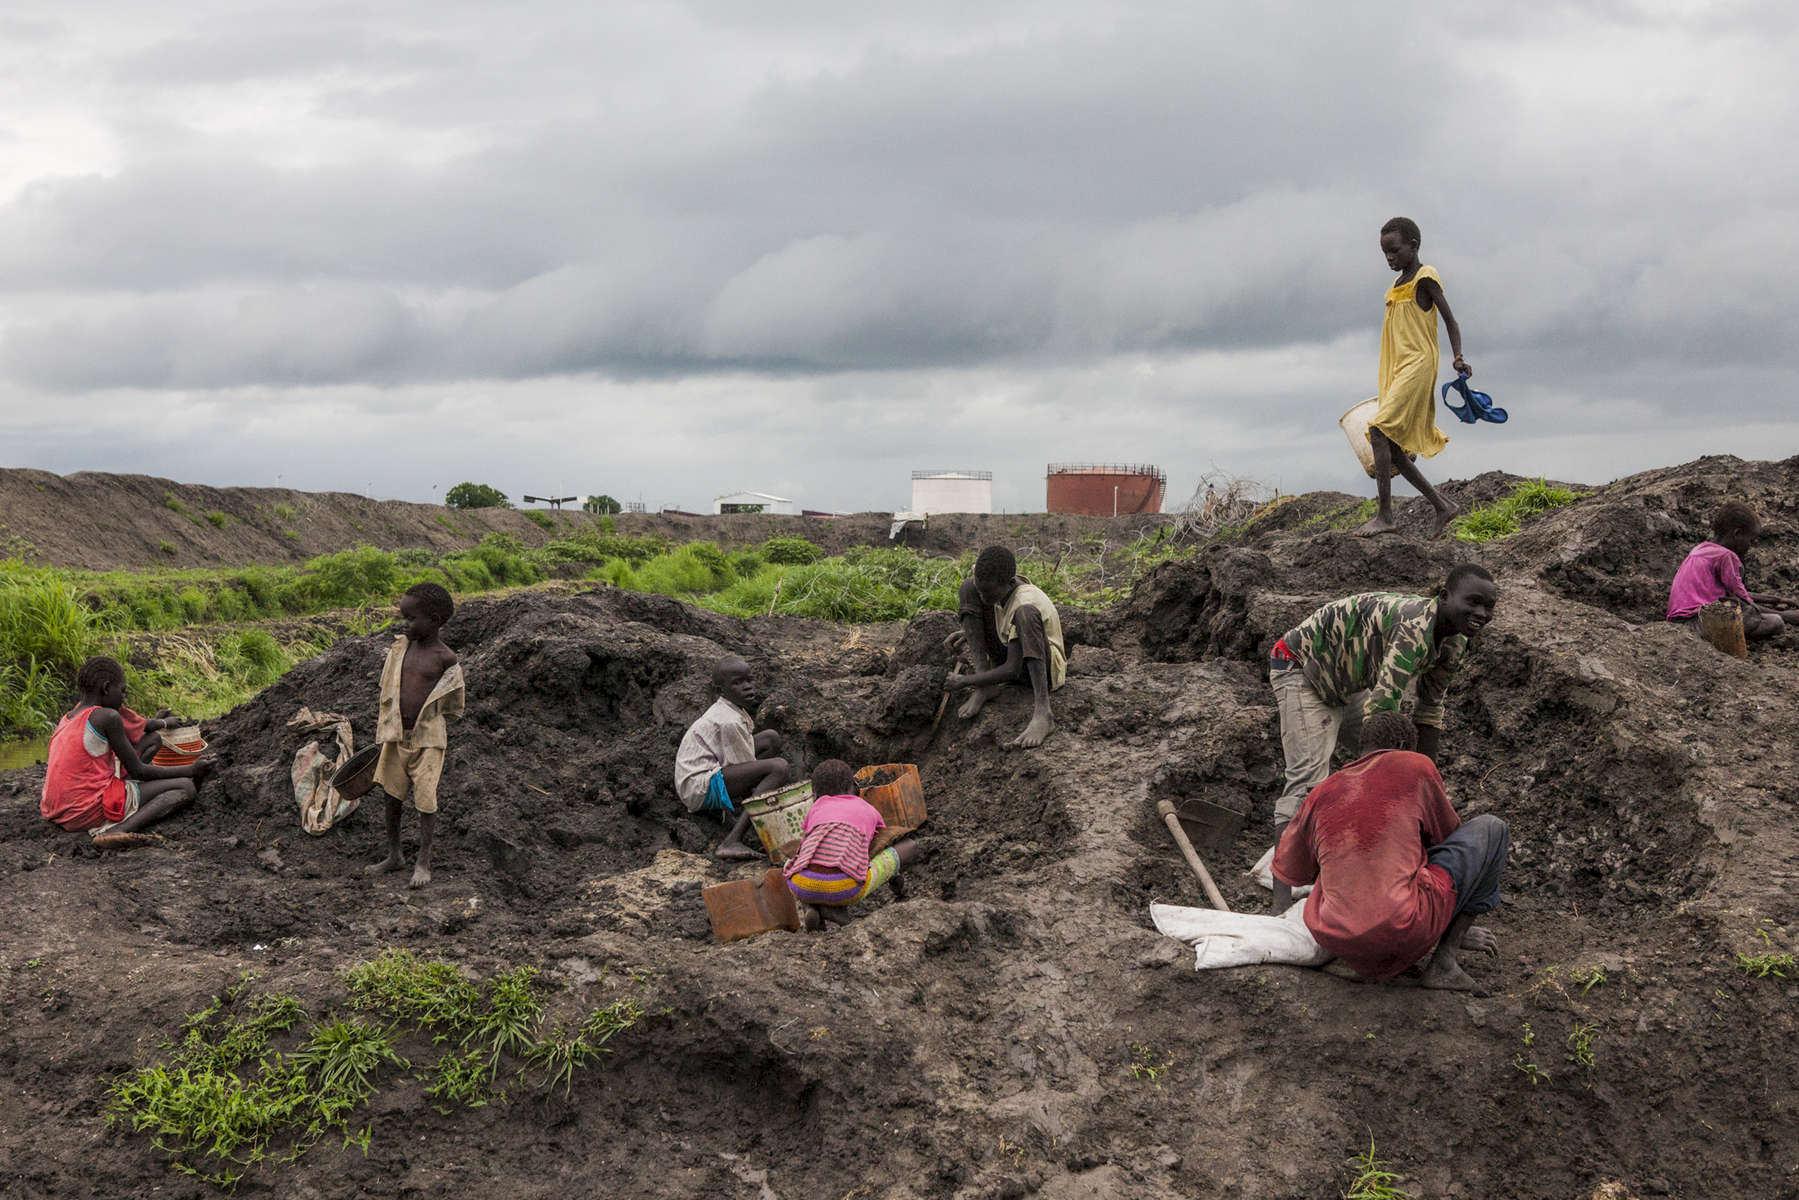 Children collect dirt to reinforce their shelters during the rainy season at the Protection of Civilians (POC) site at the United Nations Mission in South Sudan (UNMISS) compound in Malakal, South Sudan on Wednesday, July 13, 2016. The Malakal POC site houses over 32,000 displaced people mainly from the Shilluk and Nuer tribes. In February of this year, members of the Dinka tribe, who resided in the camp at the time, carried out a coordinated attack within the site leading to the destruction of hundreds of shelters and many deaths. Since then, most members of the Dinka tribe have fled to Malakal town where they occupy the homes of those still displaced.